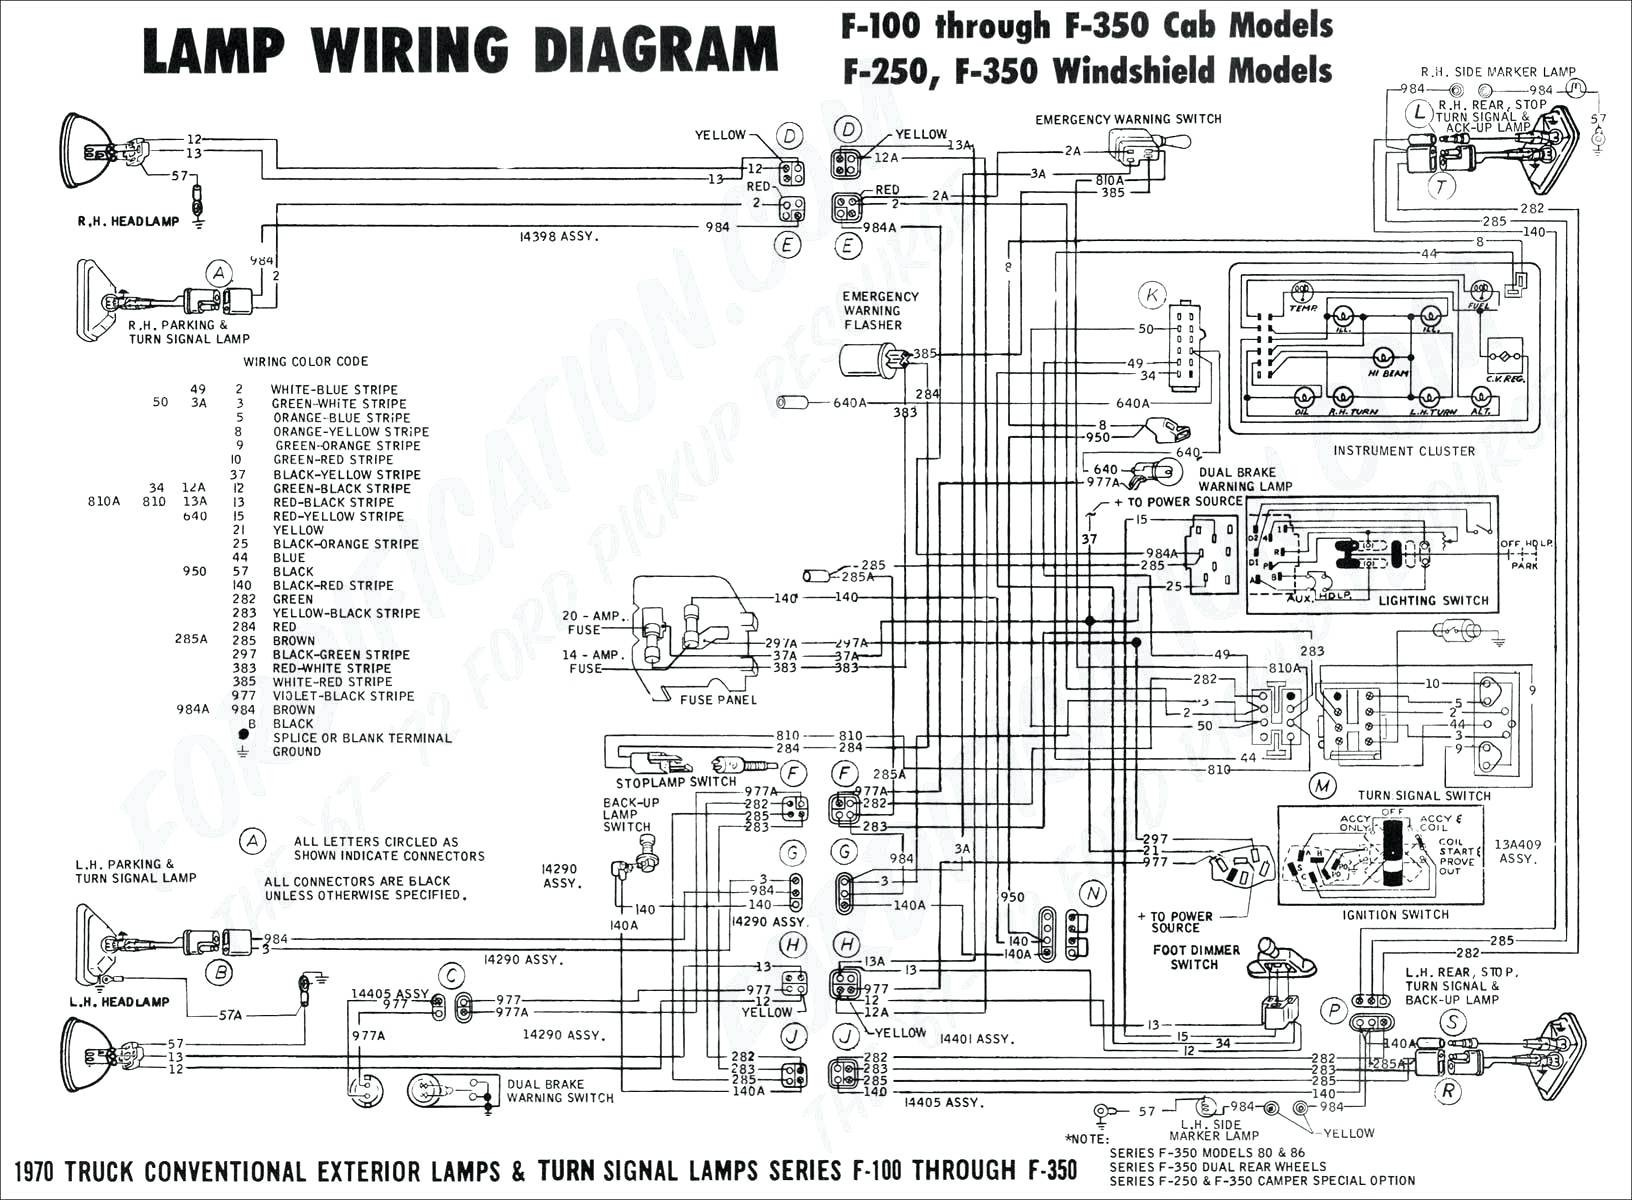 1997 plymouth breeze 2 0 l4 gas wiring diagram components on diagram1996 plymouth breeze fuse box [ 1632 x 1200 Pixel ]